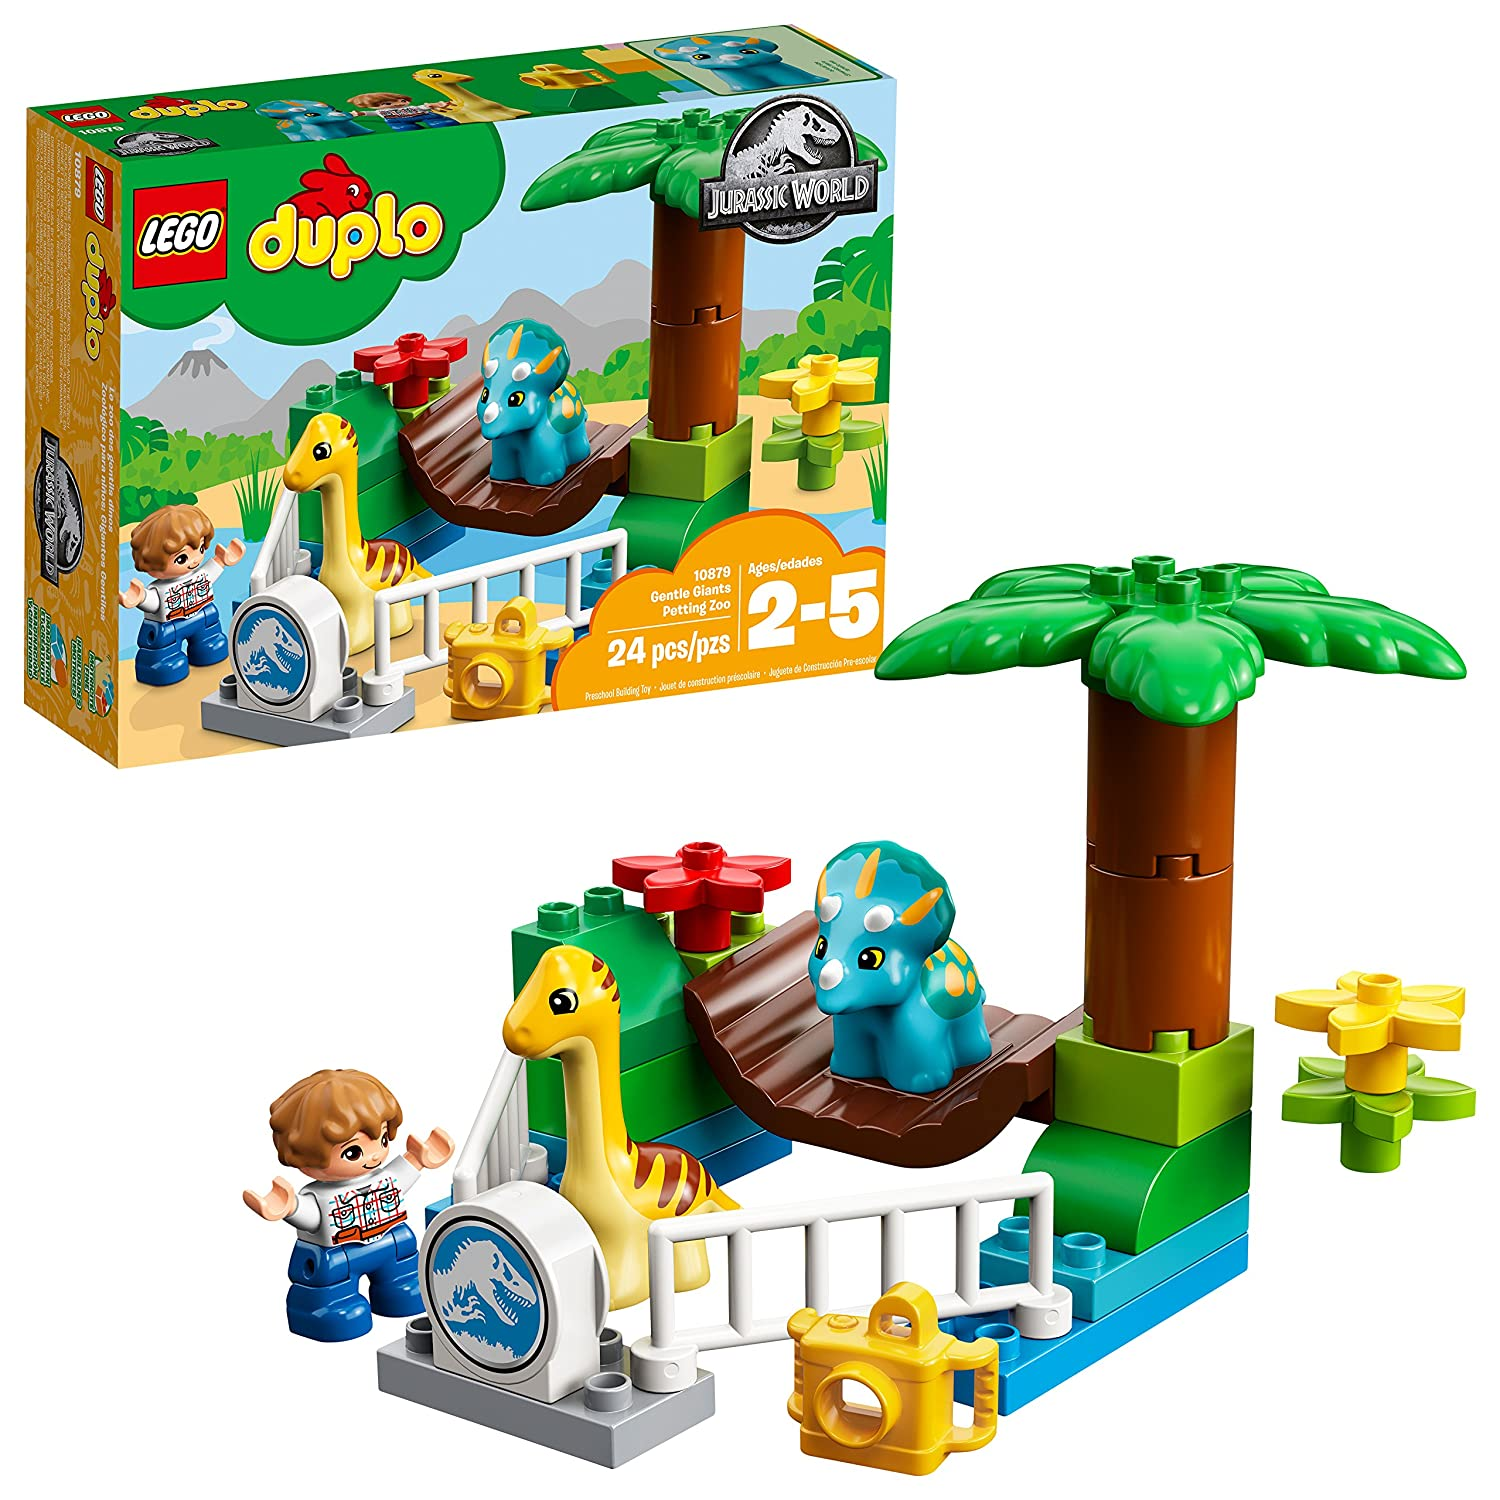 Lego® Duplo® Jurassic World Gentle Giants Petting Zoo 10879 Toddler Toy 6213745